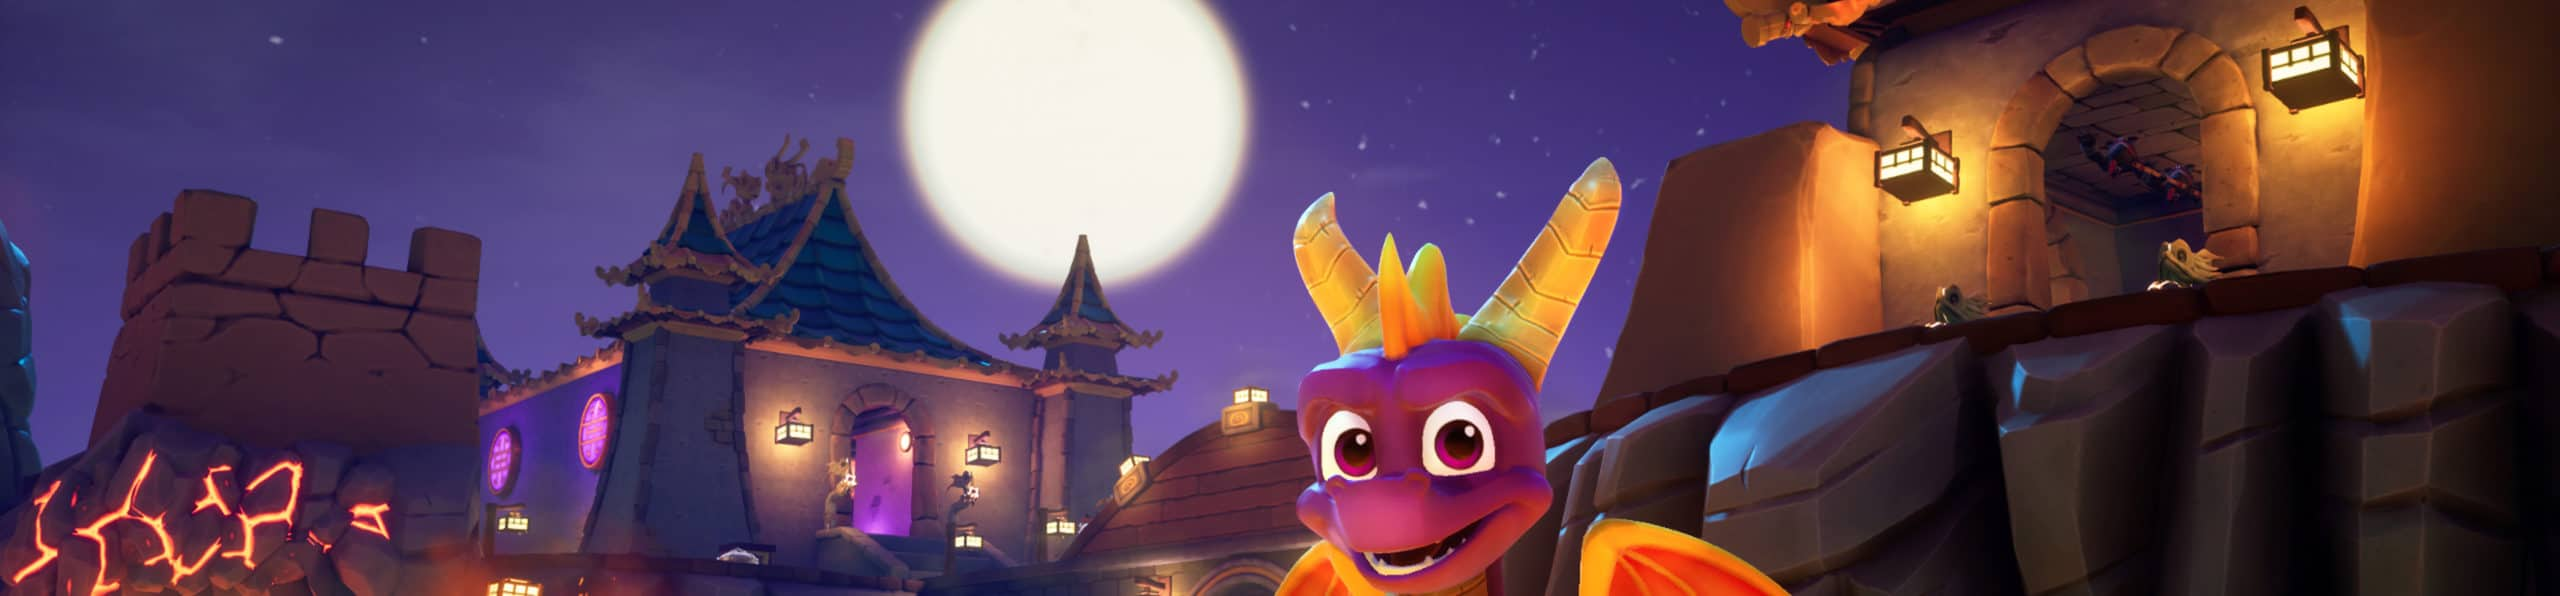 CLASSIC GAMES: SPYRO™ REIGNITED TRILOGY FEATURES REMASTERED ENVIRONMENTS BY VIRTUOS